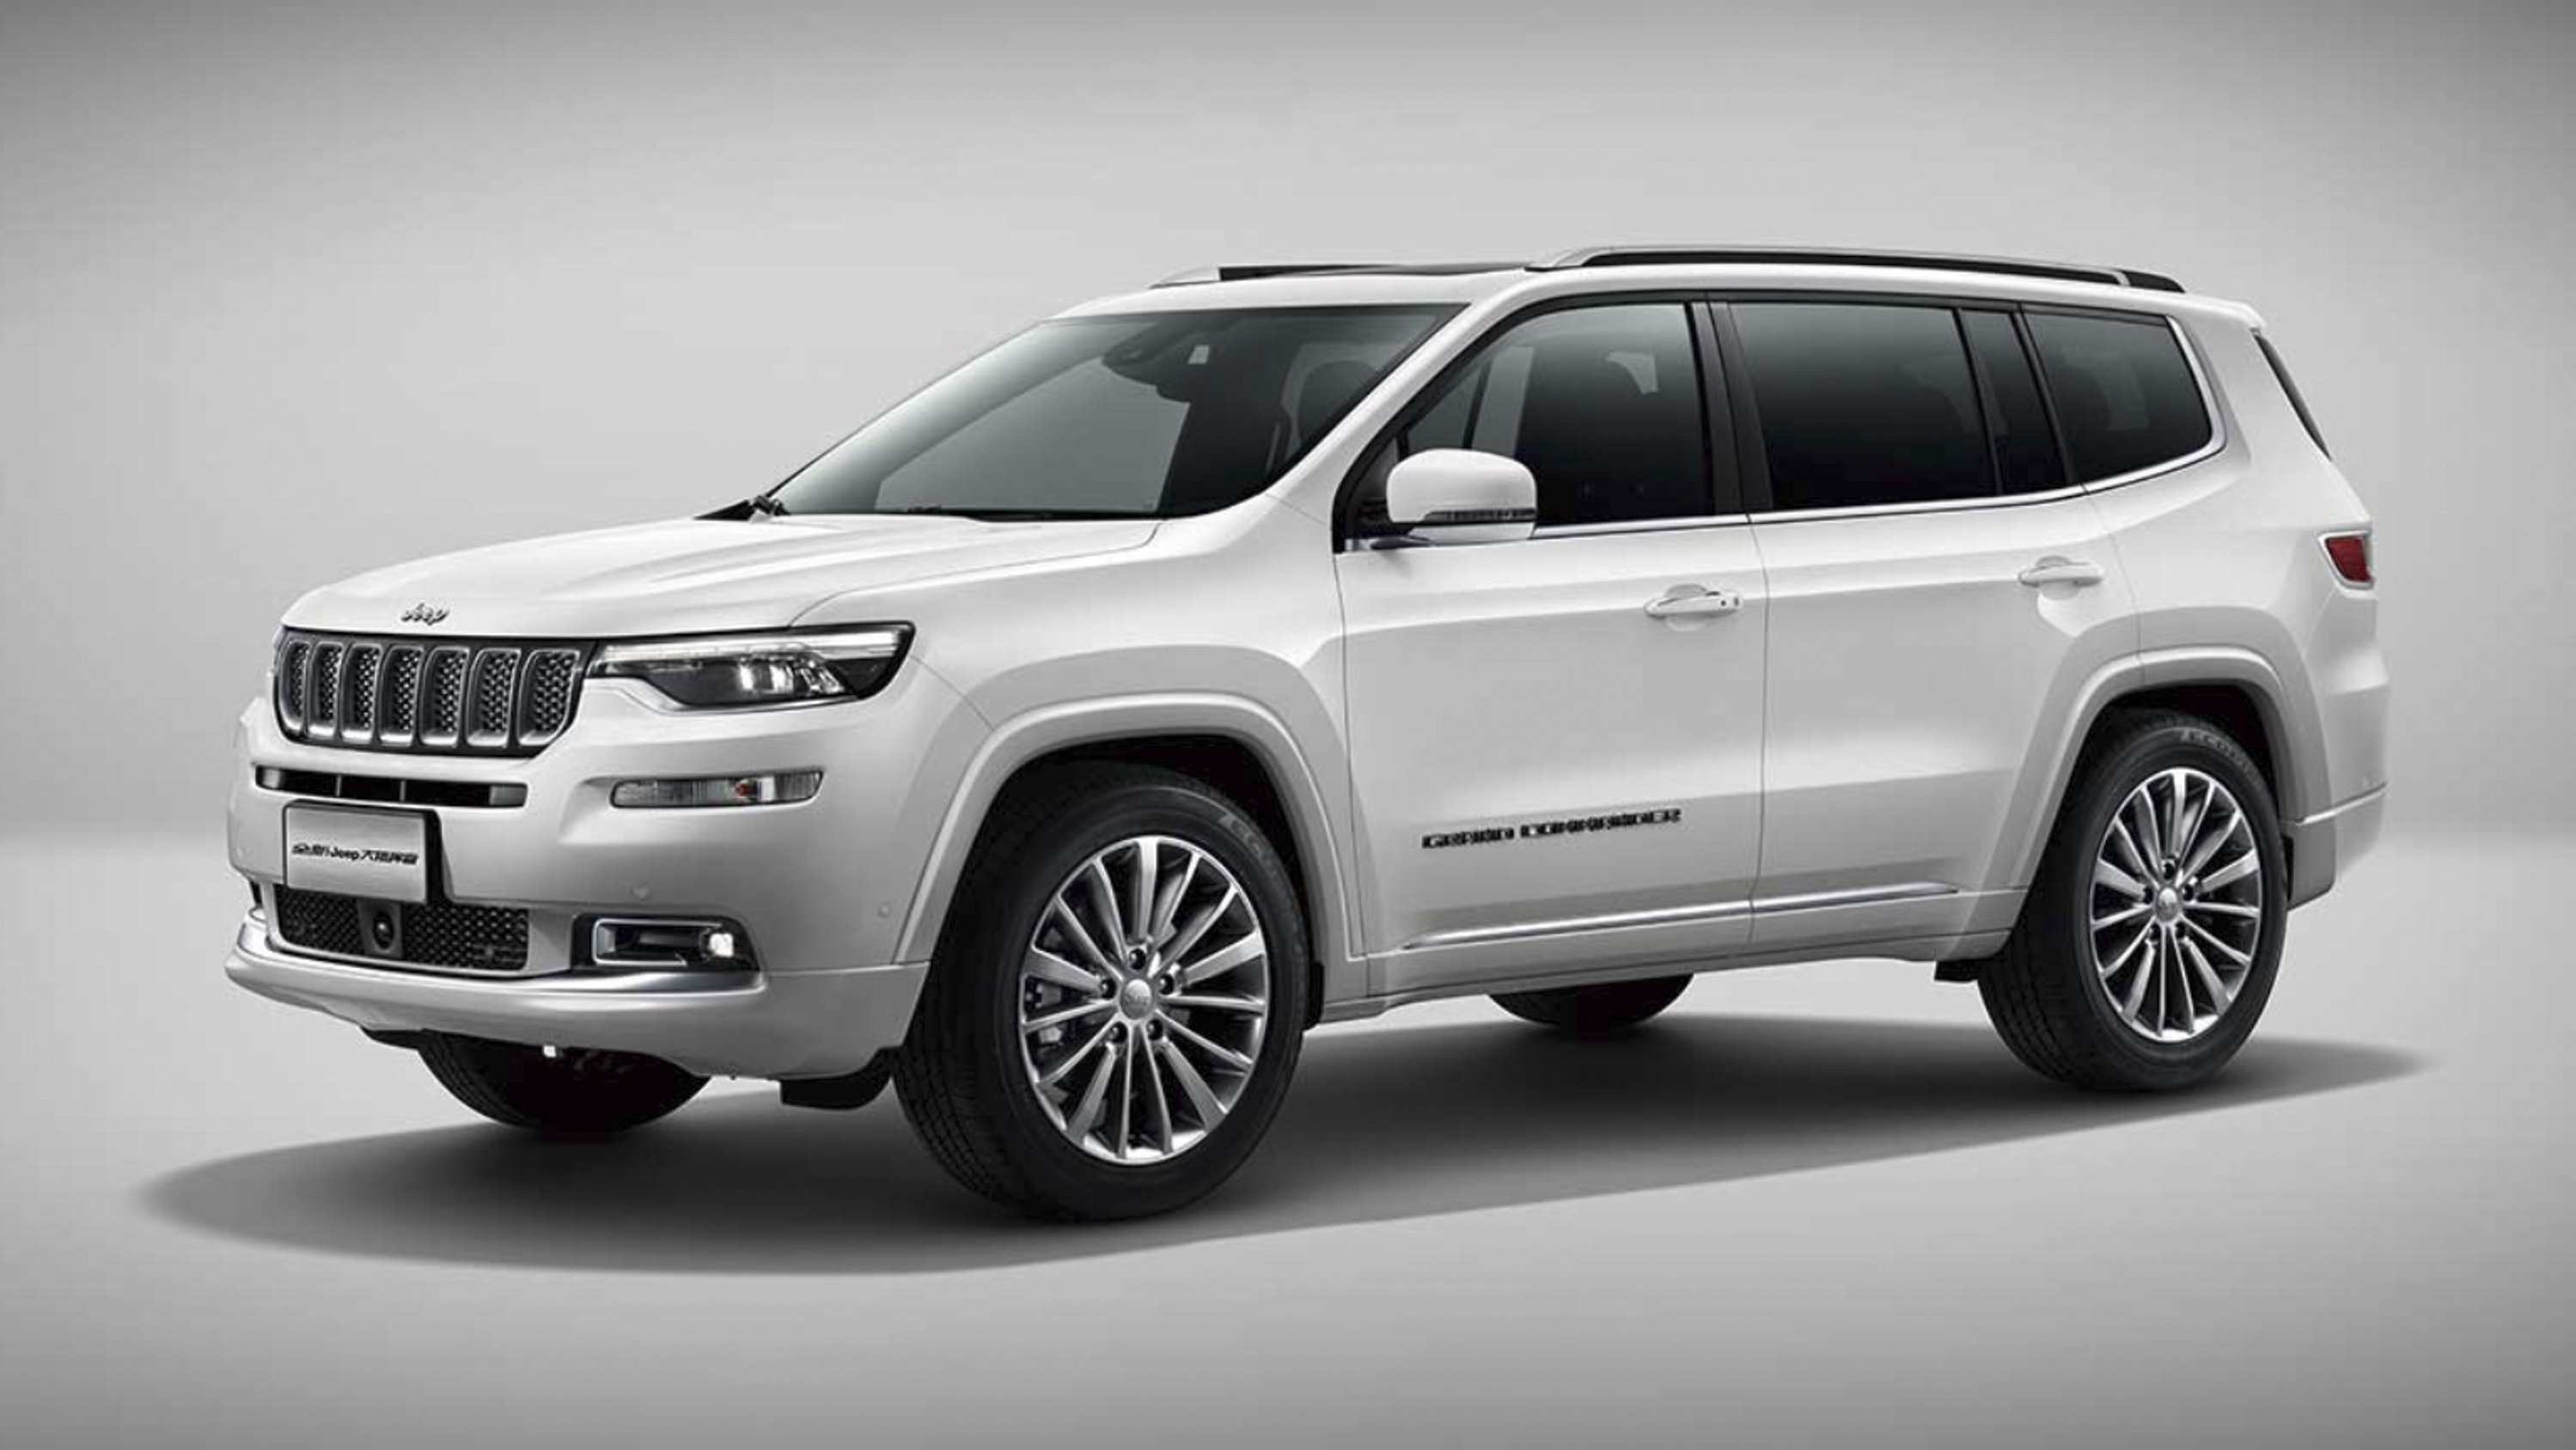 69 Best Review New Jeep Grand Commander 2019 Price Price with New Jeep Grand Commander 2019 Price